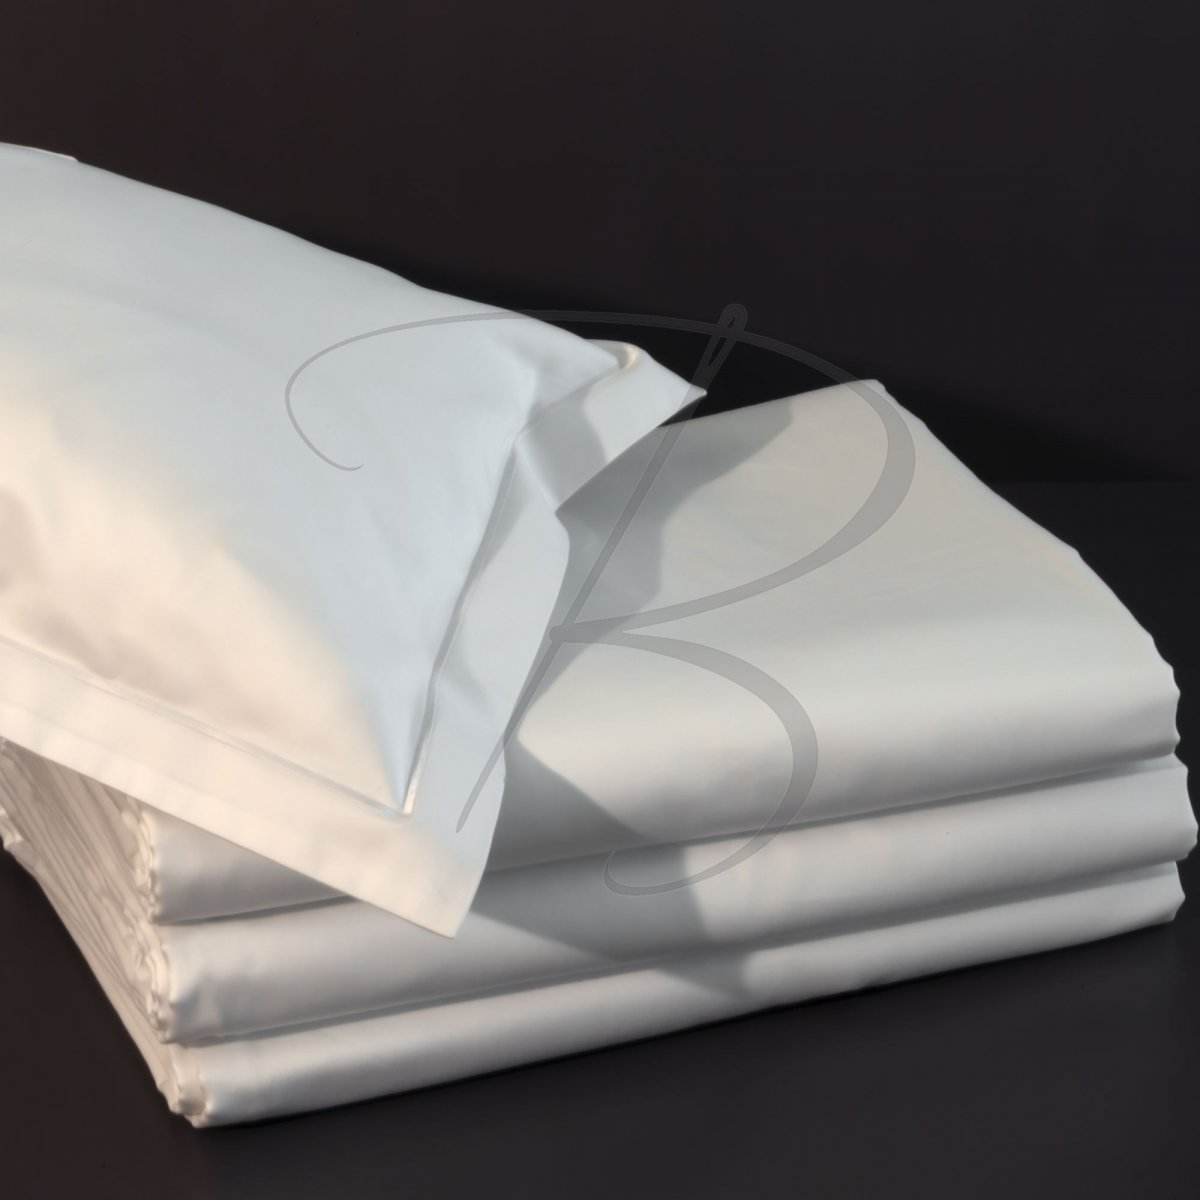 Comforter cover cotton 400 - 200 x 200 - 140g/m² - 400TC